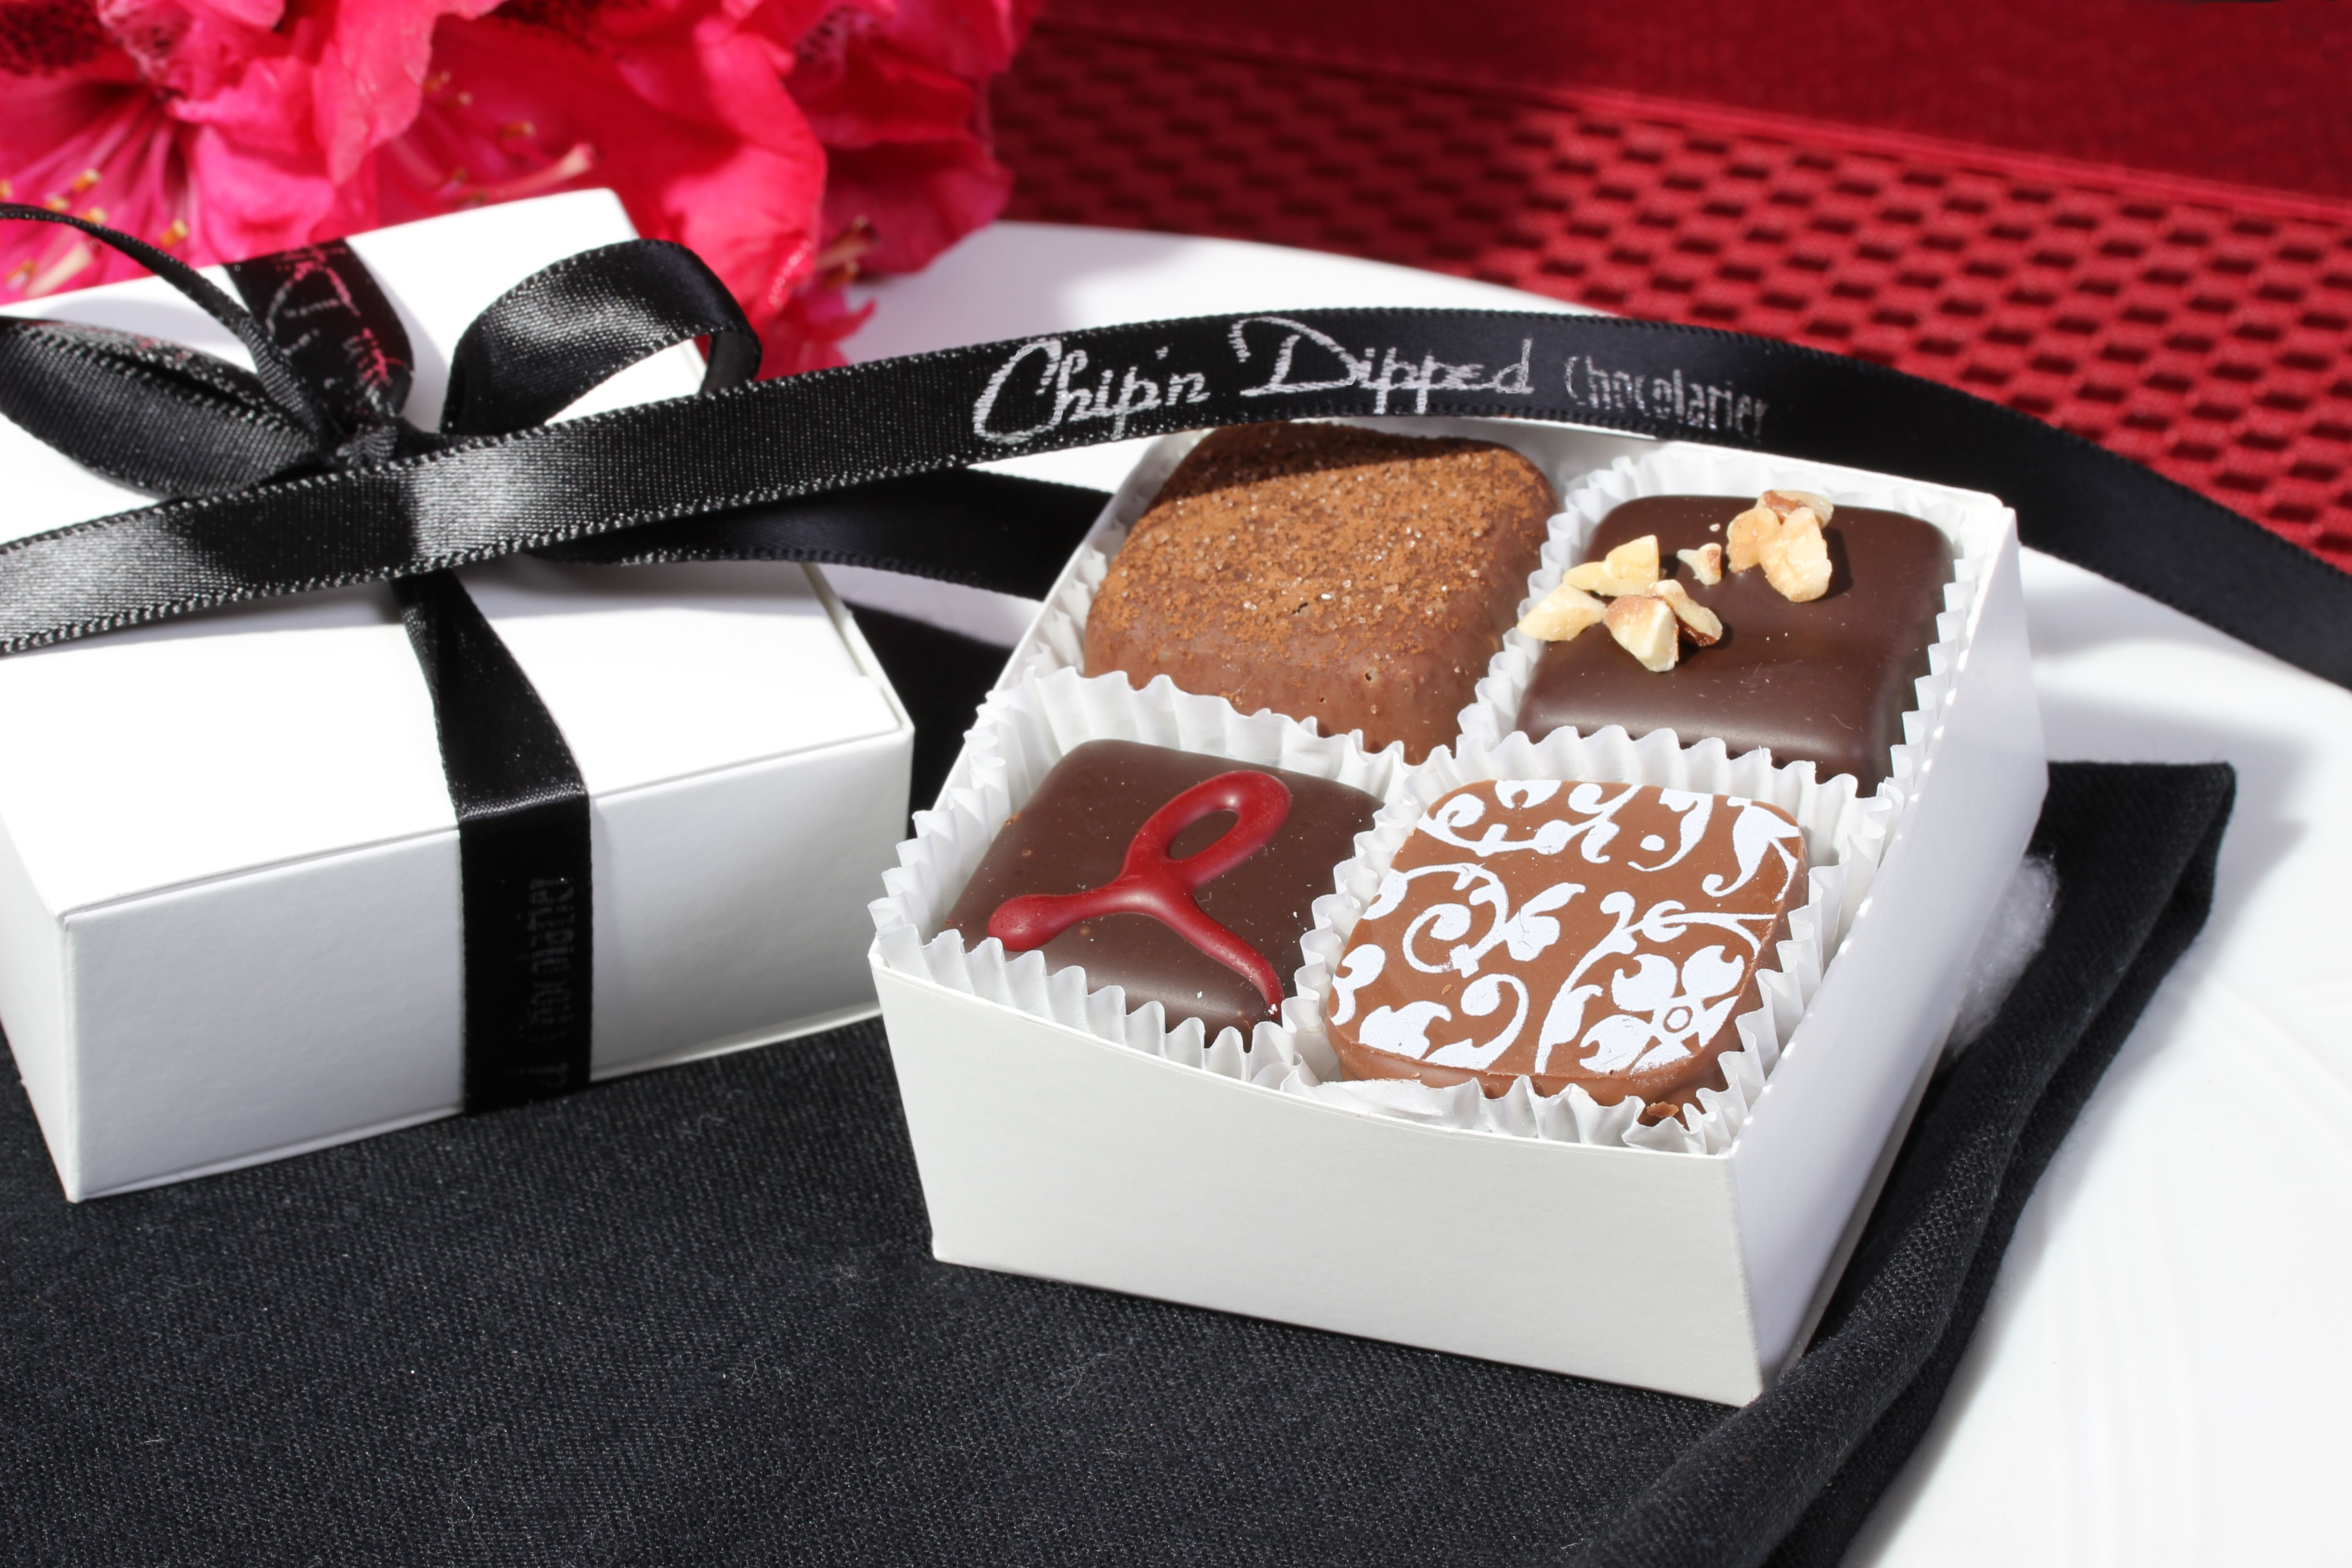 One Of The Most Por Wedding Favors S Get For Their Party Are Chocolates At Chip N Dipped We Believe Our Handmade Truffles Can Help Make Your